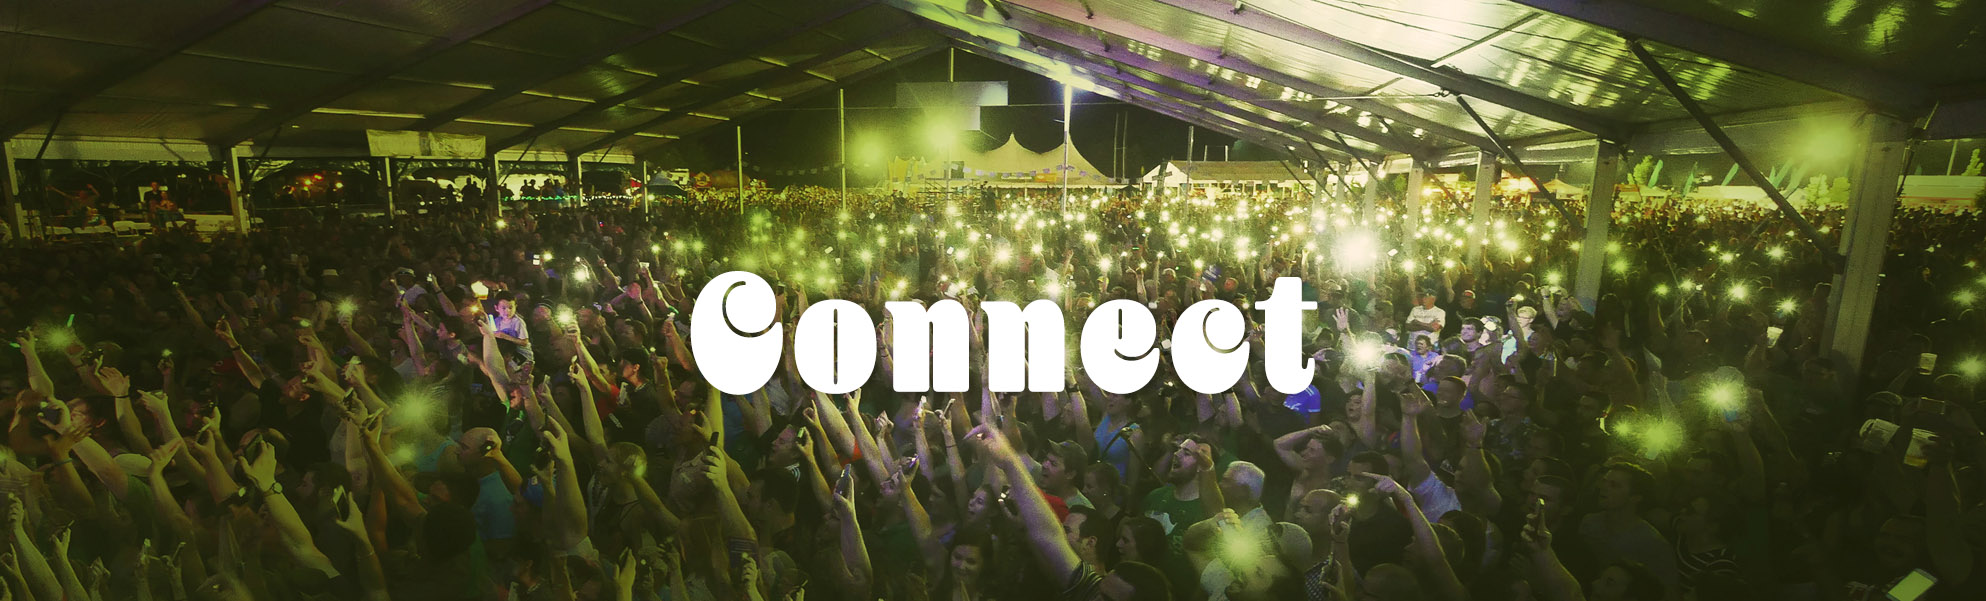 connect-header-2019